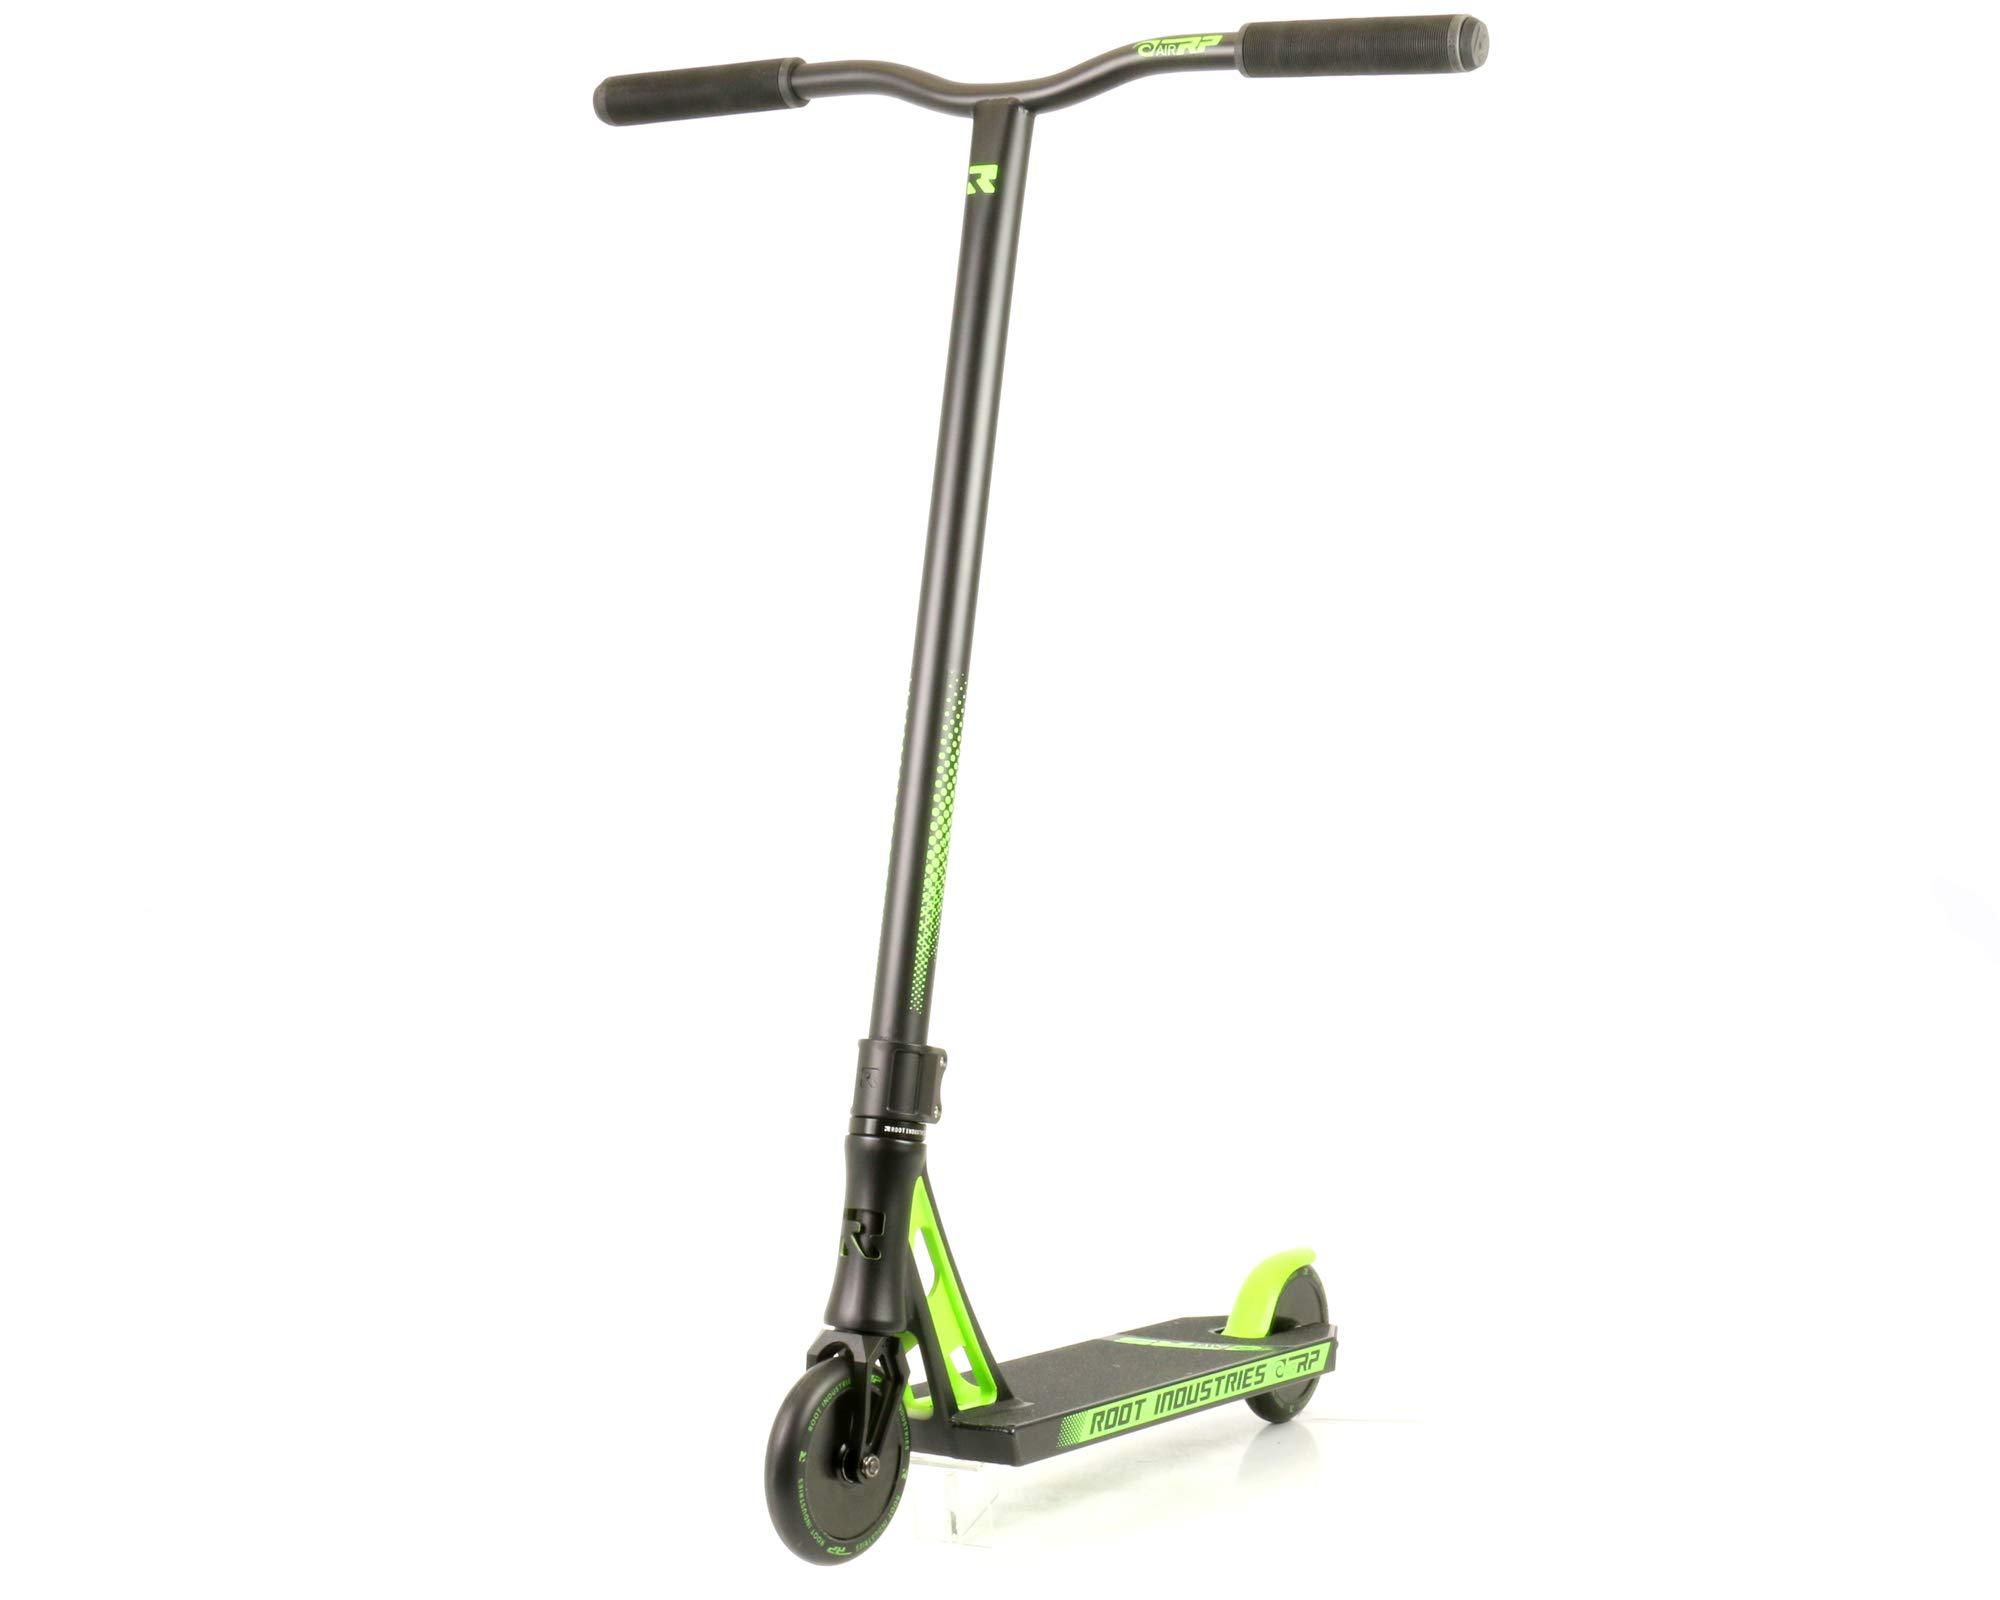 ROOT INDUSTRIES AIR RP Complete Scooter (Green)